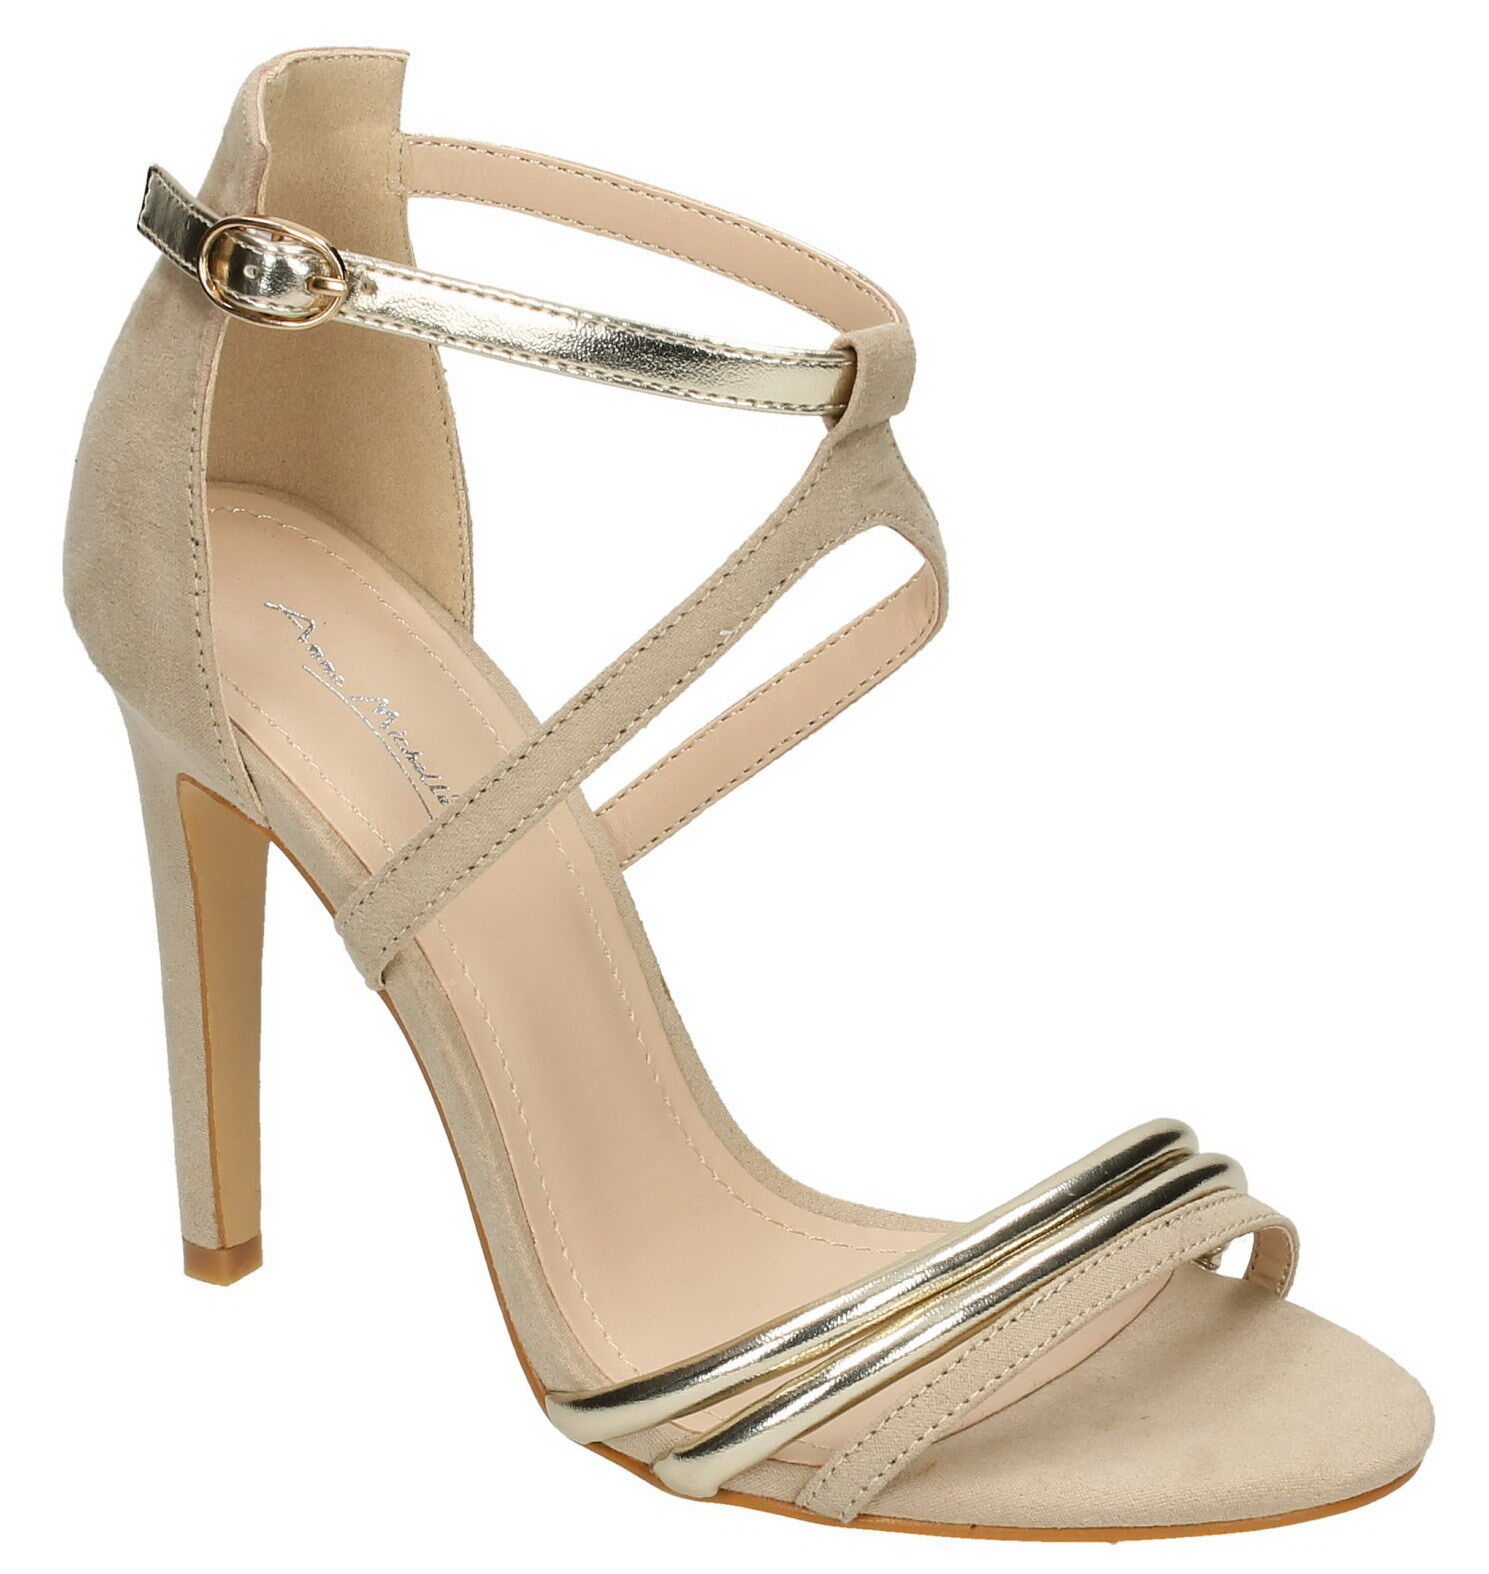 Anne Michelle F10695 Ladies Nude Microfibre Stiletto Heel Evening Sandals